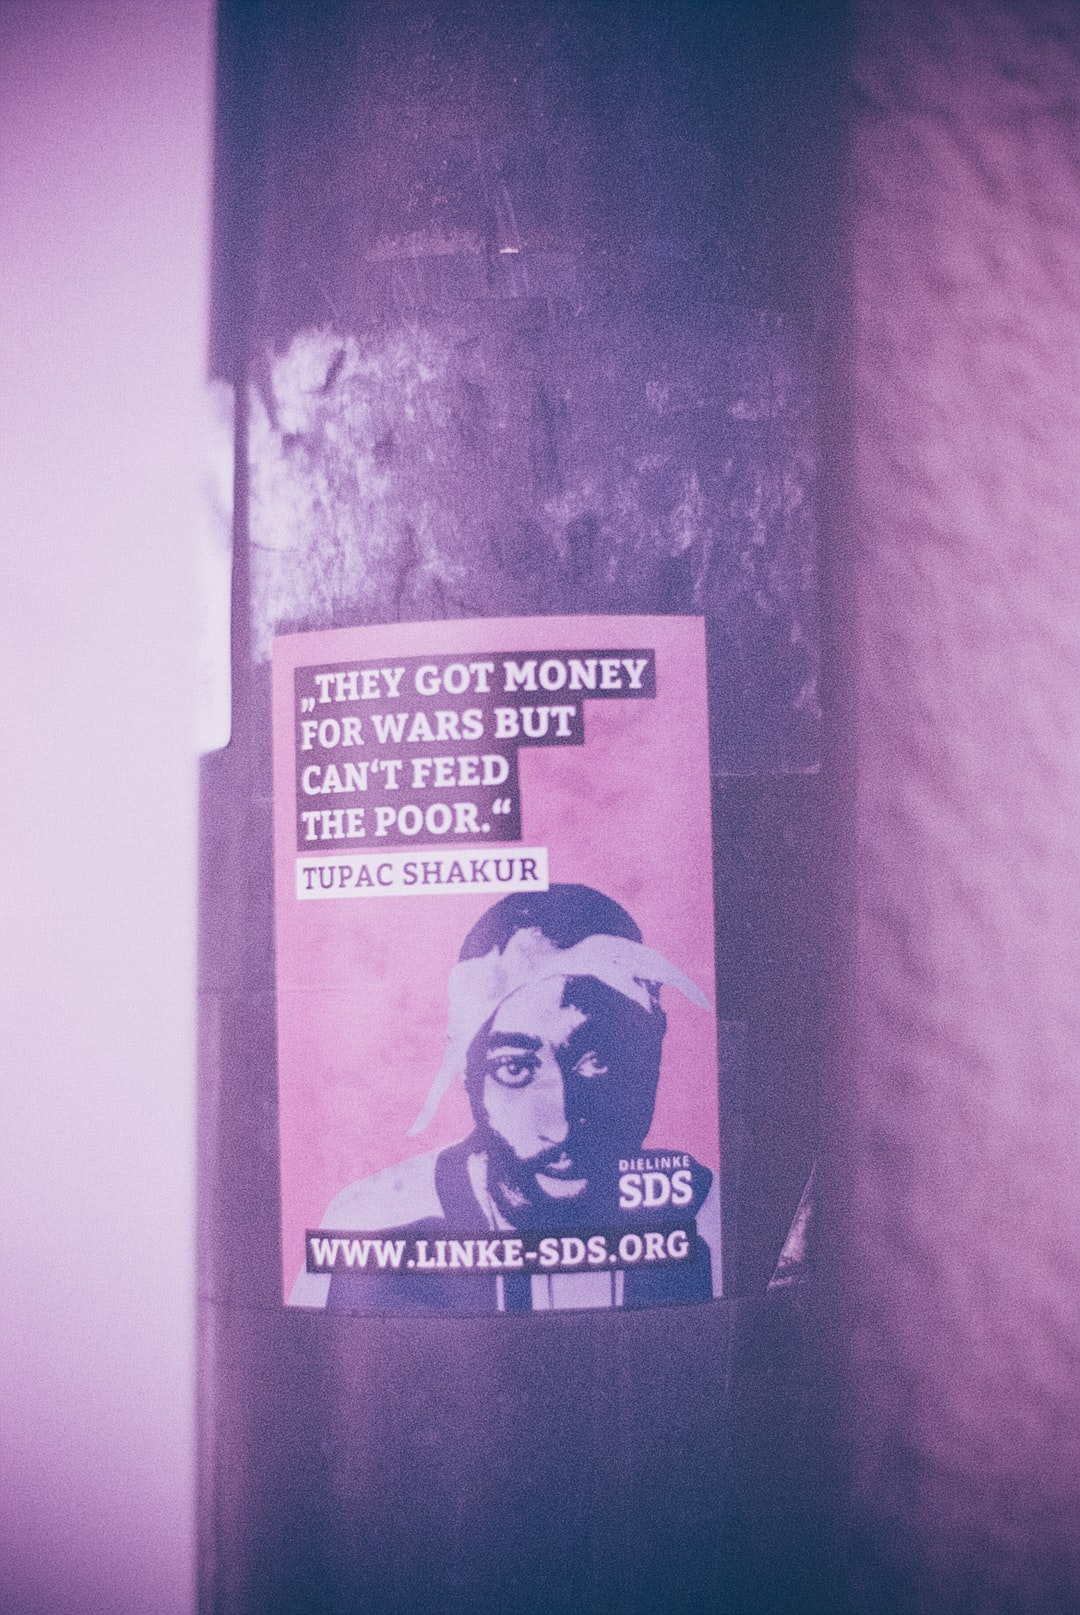 THEY GOT MONEY FOR WARS BUT CAN'T FEED THE POOR (_Tupac Shakur) – Urban street art sticker. Made with Leica R7 (Year: 1994) and Leica Summicron-R 2.0 35mm (Year: 1978). Analog scan via nimmfilm.de: Fuji Frontier SP-3000. Film reel: Kodak Ektarchrome E100 SW (expired 2001)